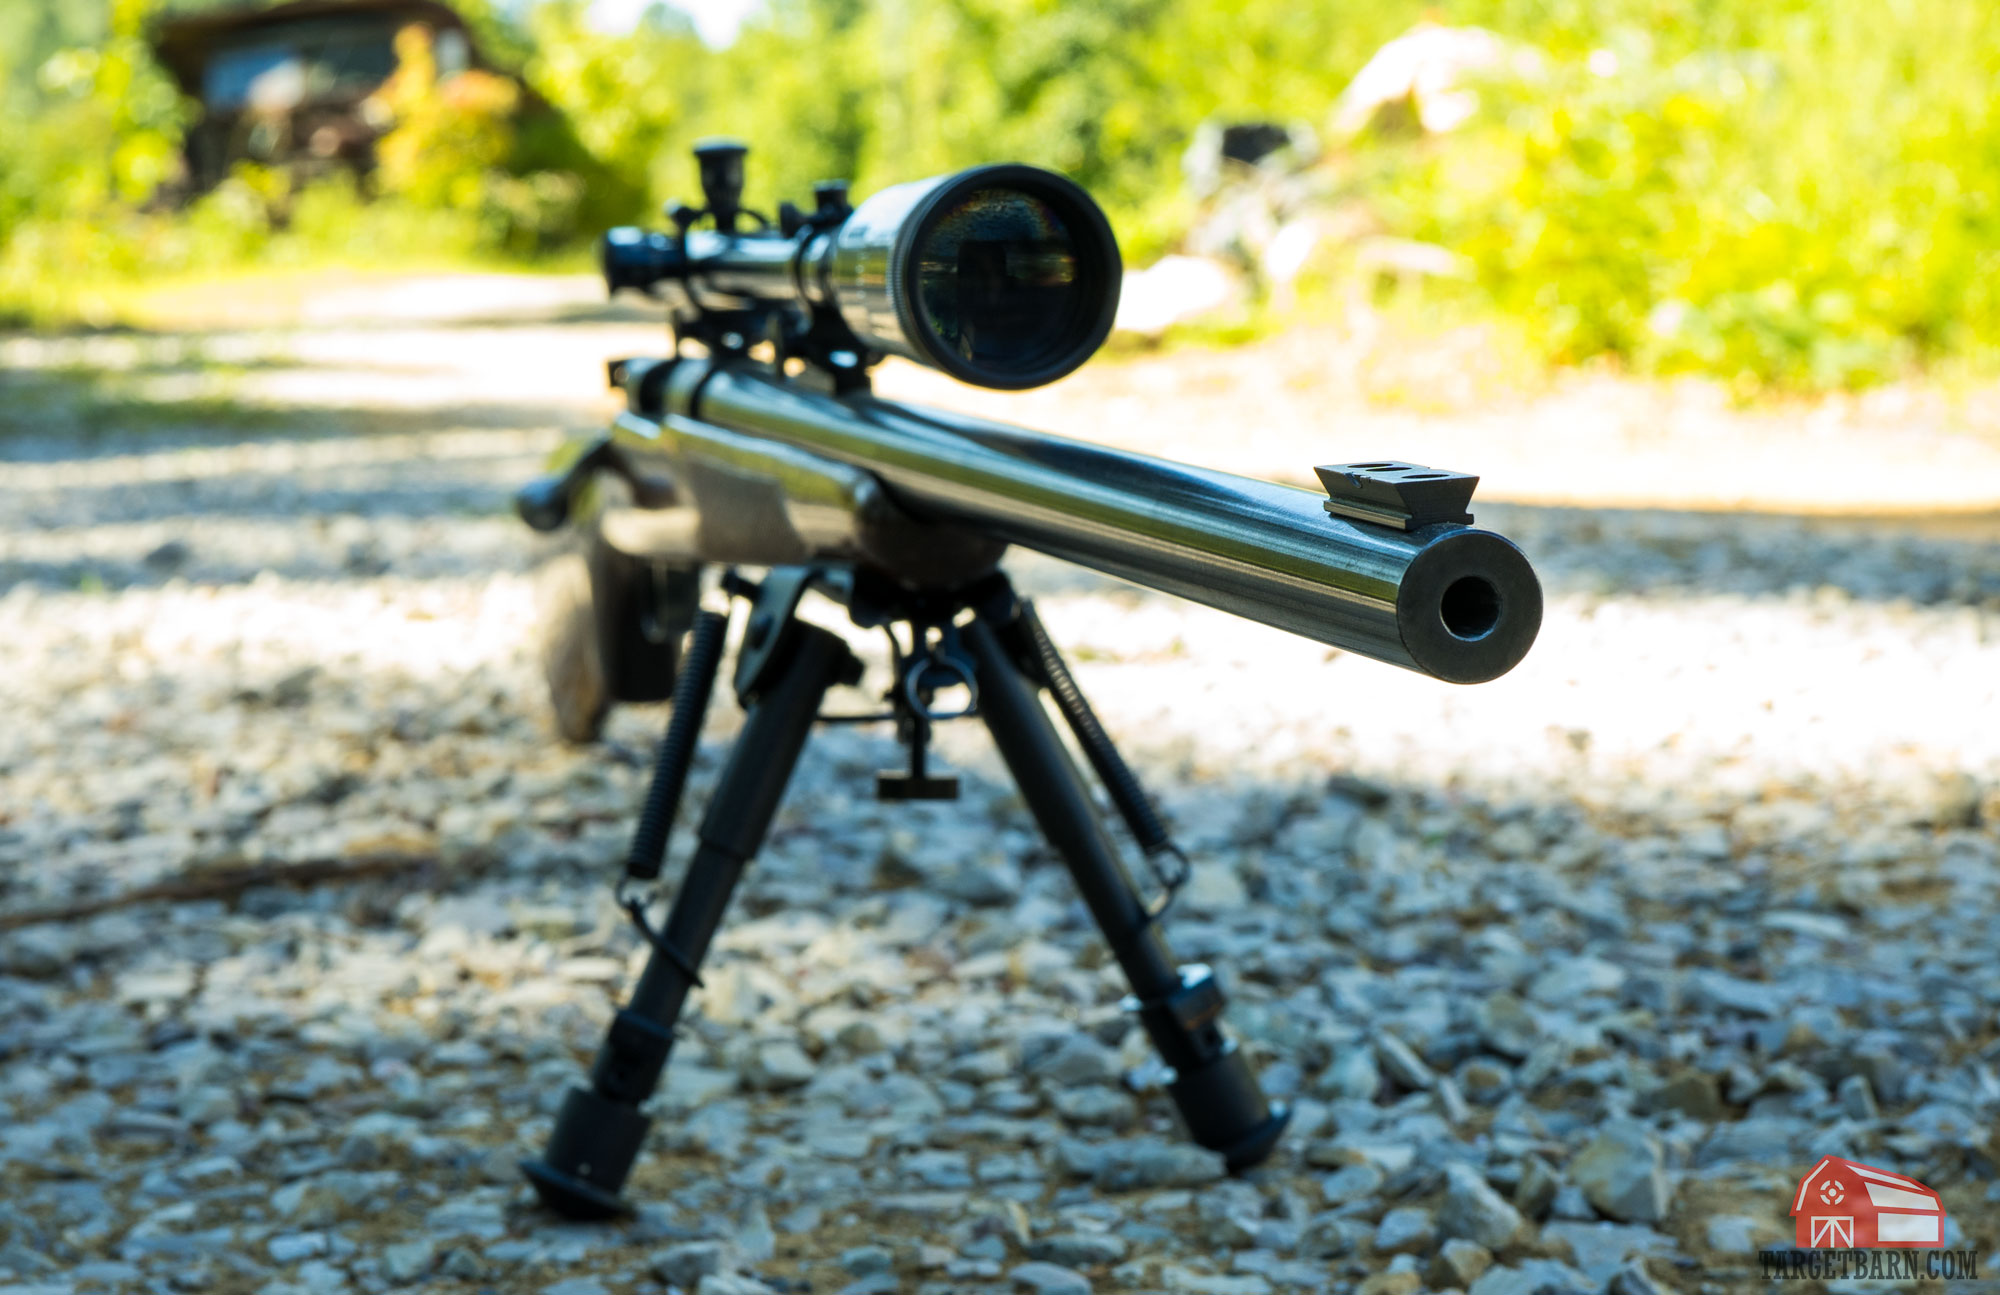 a bull barrel on a hunting rifle helps resist vibration, reduces recoil, and is more accurate